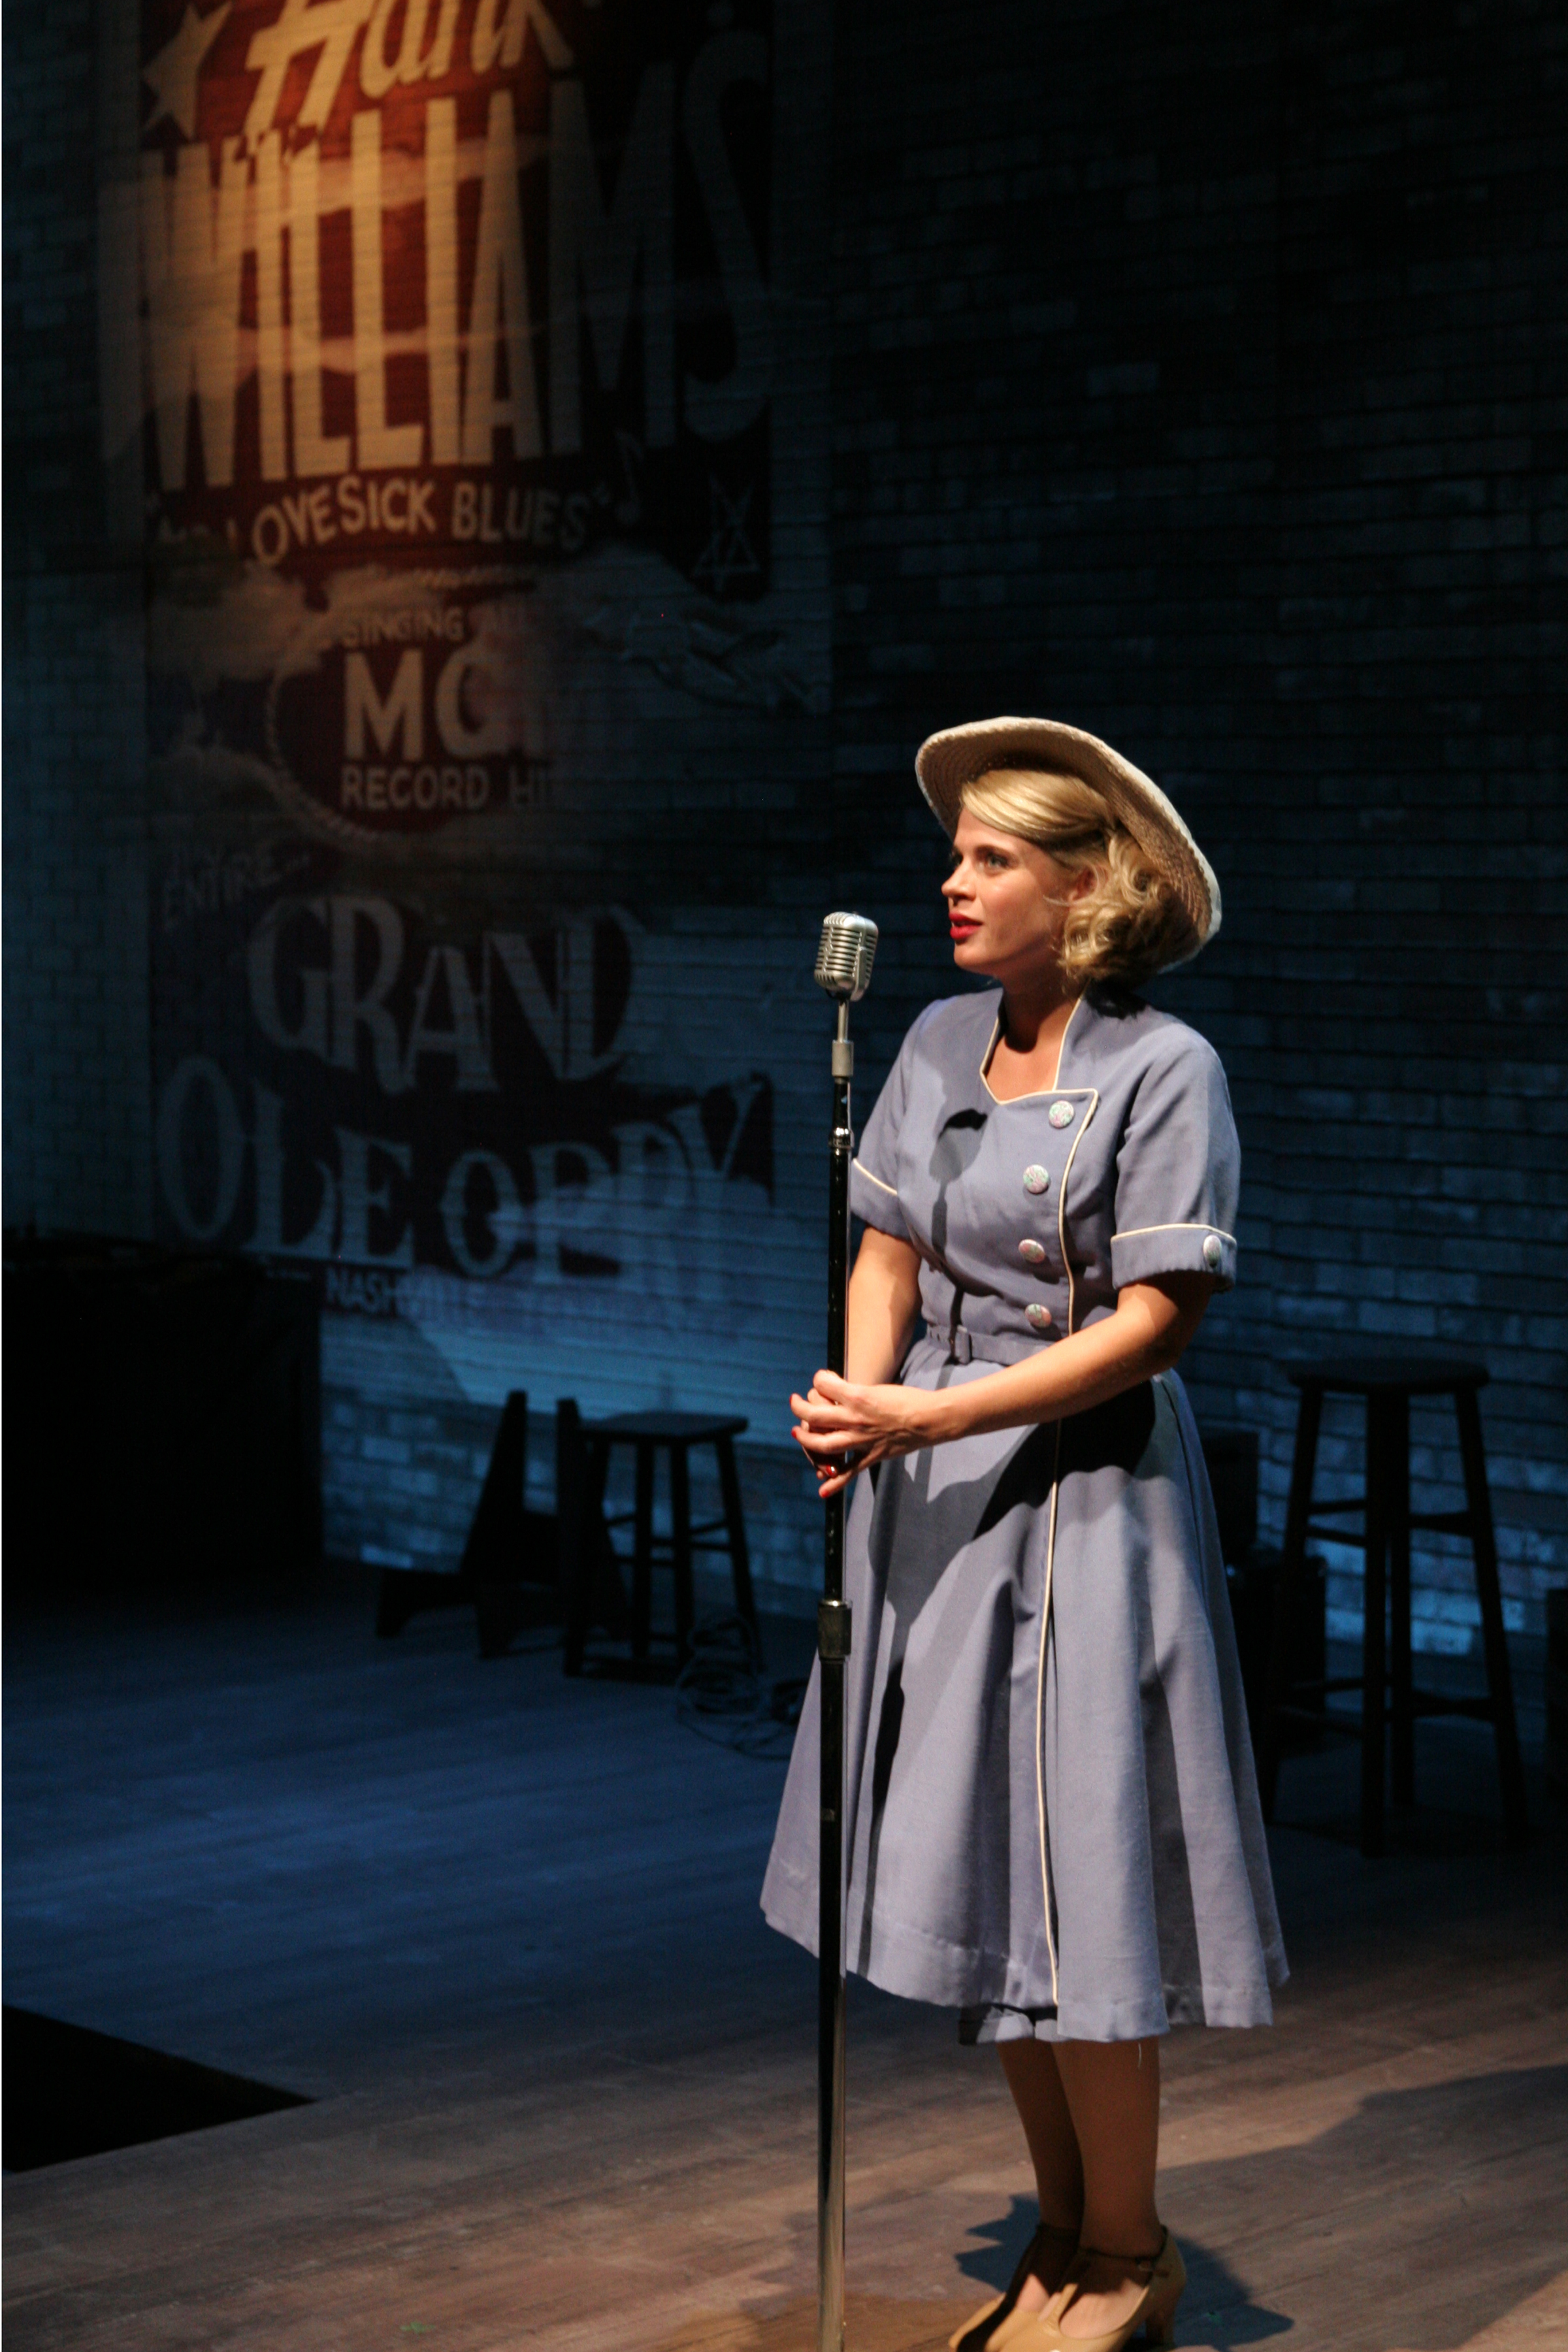 Sarah Coykendall.  Scenic Design by Liliana Duque Pineiro, Costume Design by Valera Coble, Lighting Design by Allen Willner, Sound Design by Lawton Lovely.  Photo by Terry Sullivan.